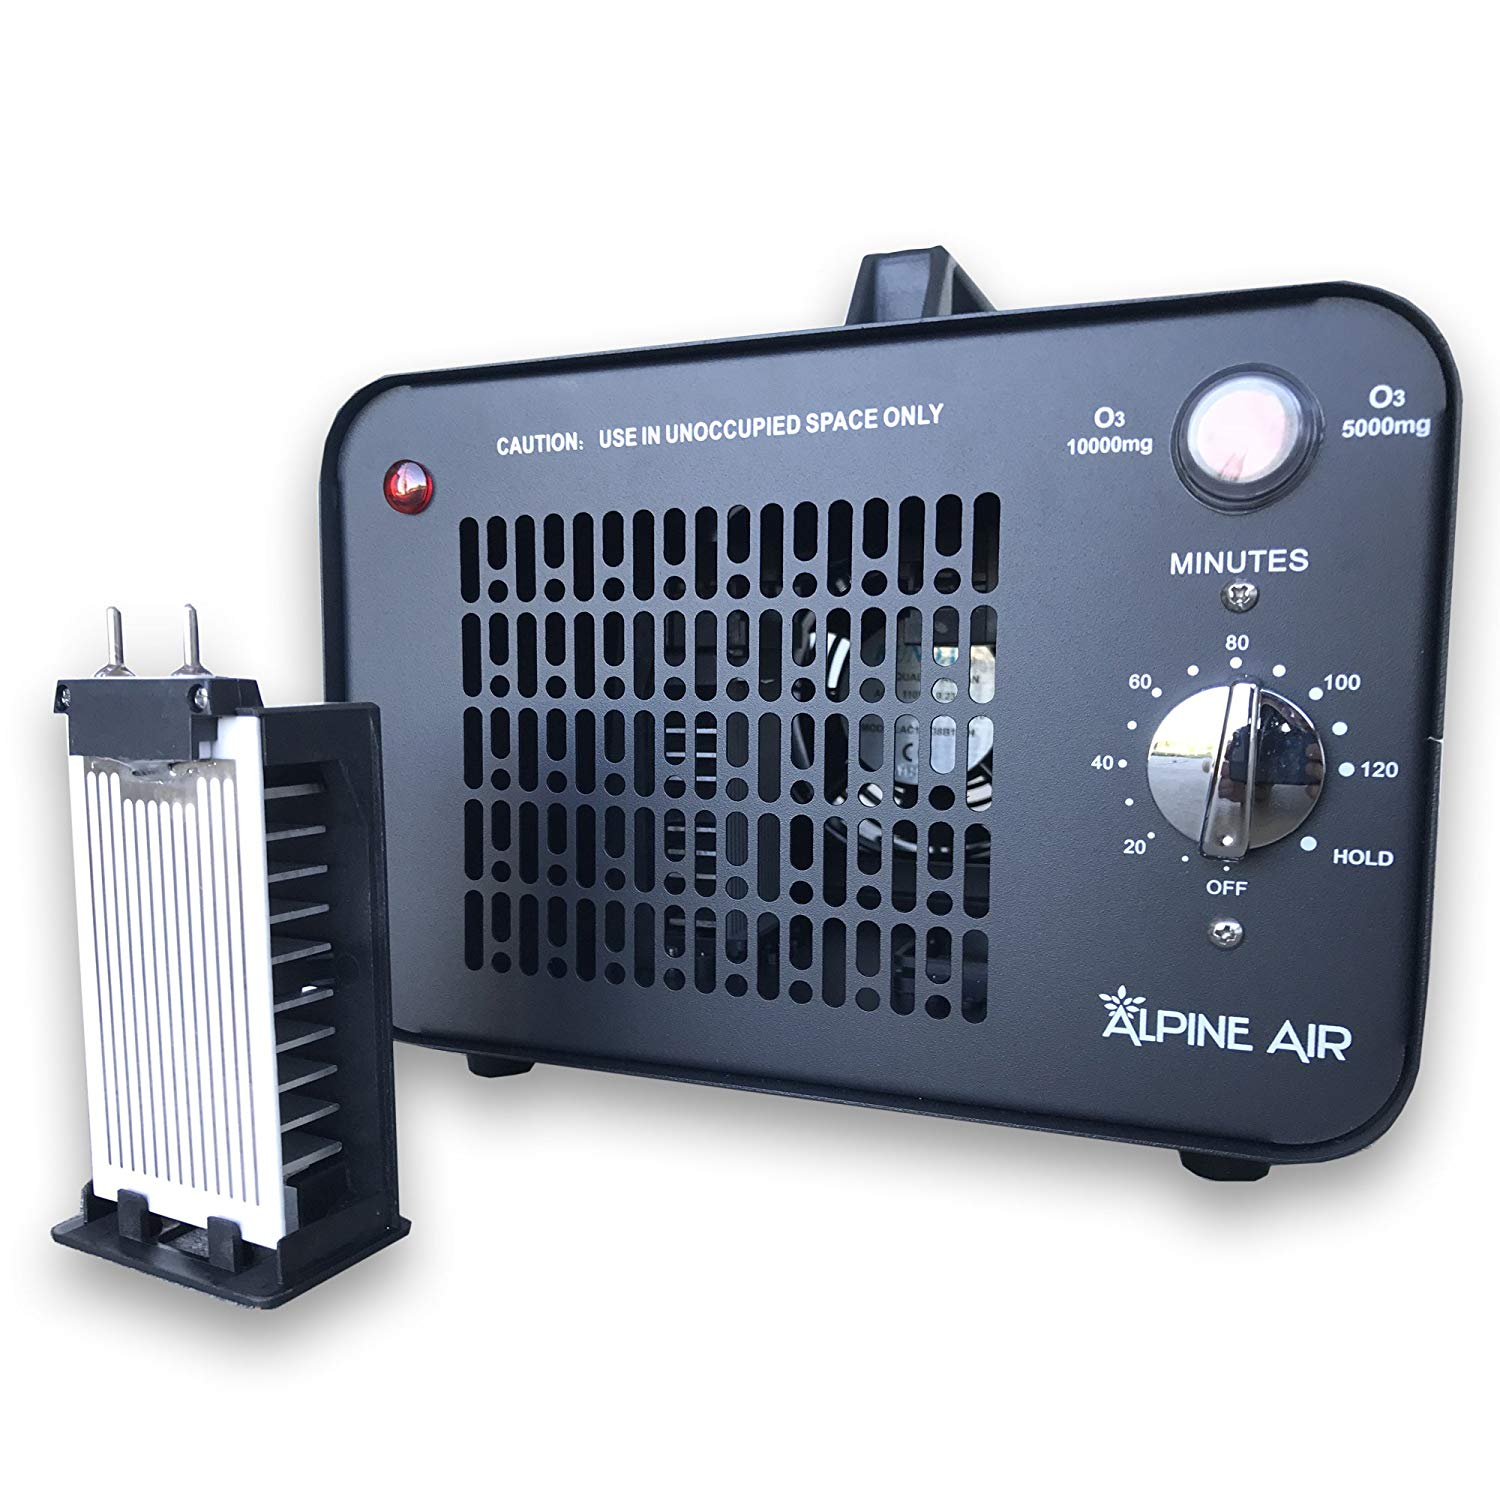 Alpine Air Commercial Ozone Generator